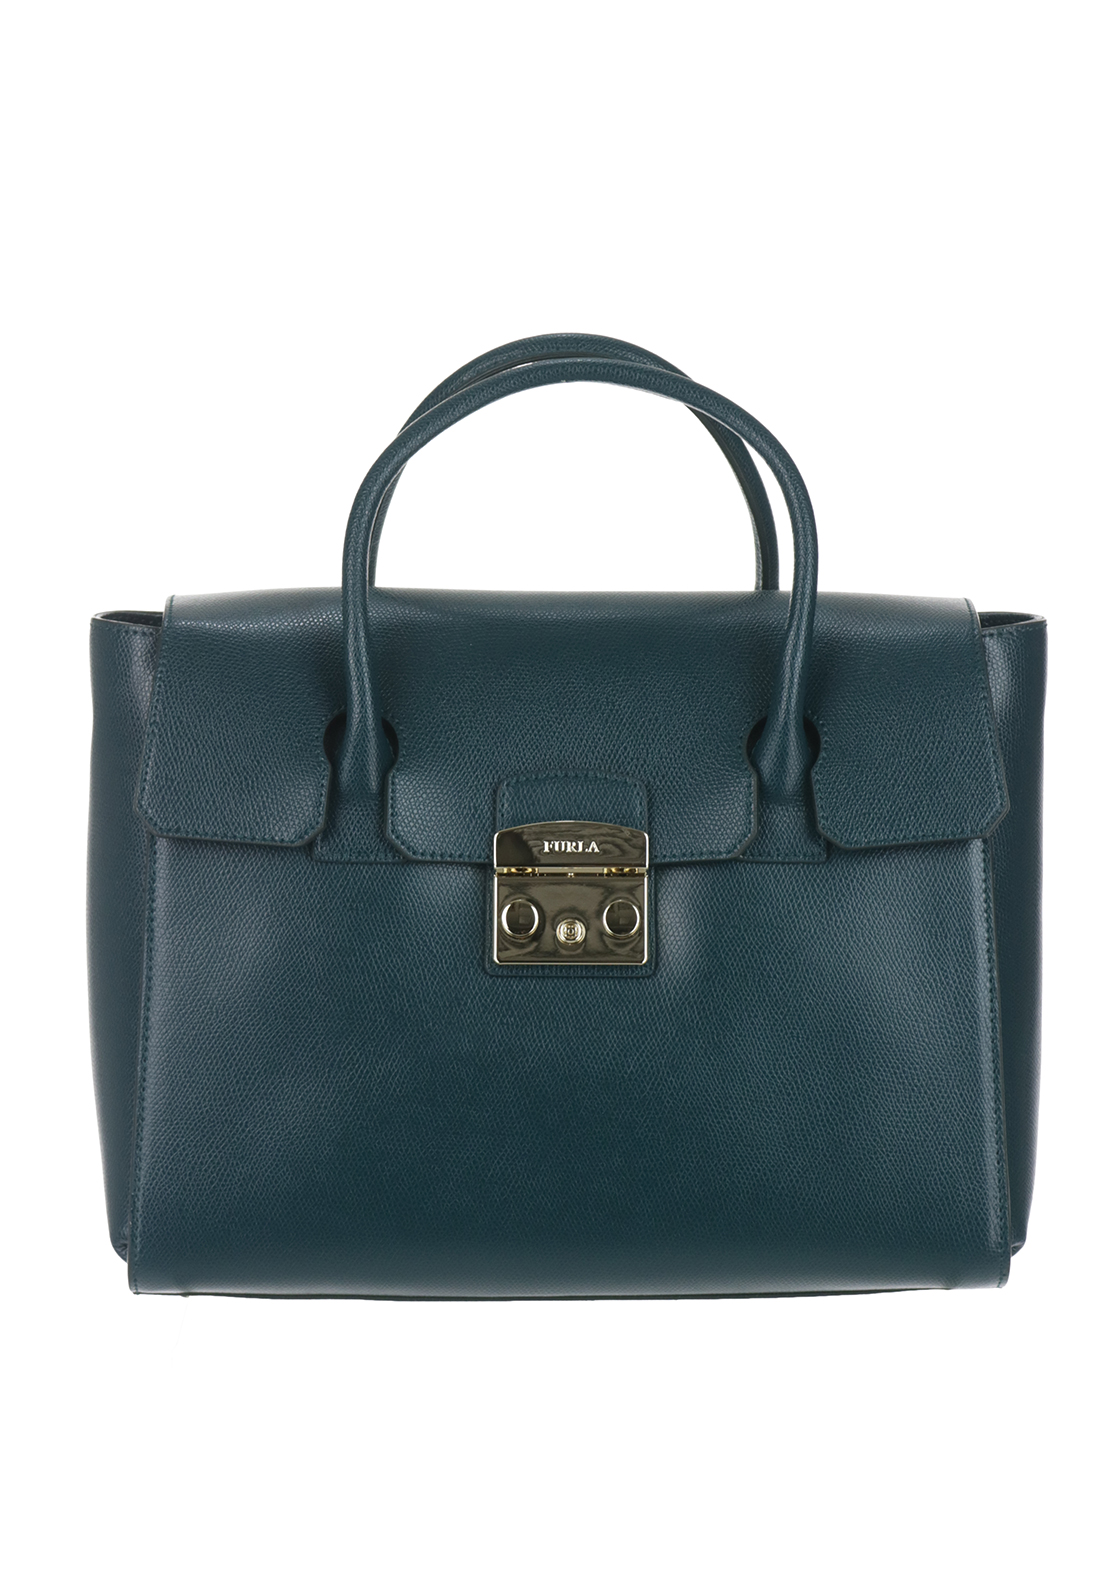 Furla Metropolis Leather Medium Satchel Bag, Teal Green